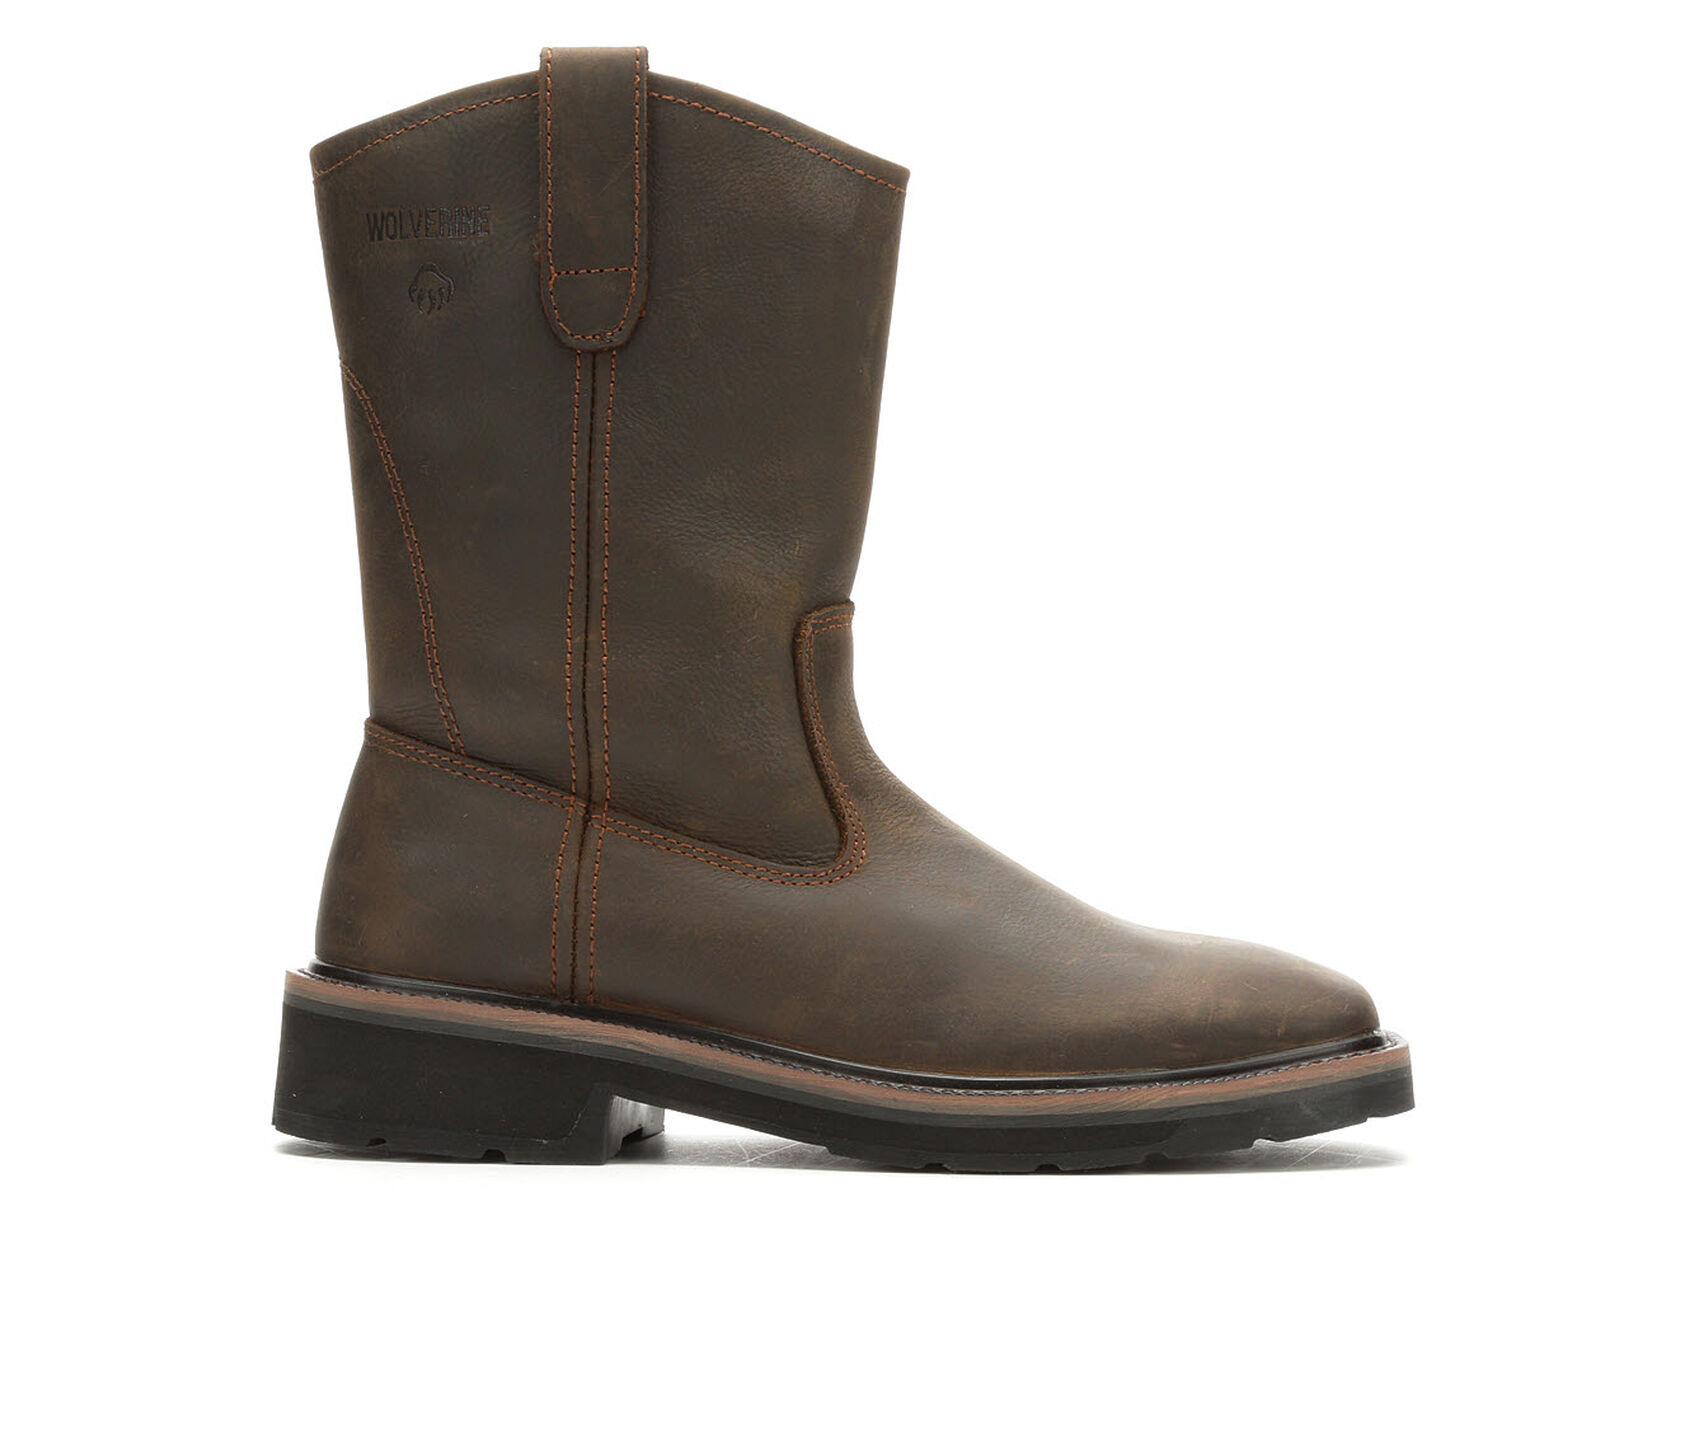 0c45657e70e Wolverine Pull On Boots - The Best Boots In The World